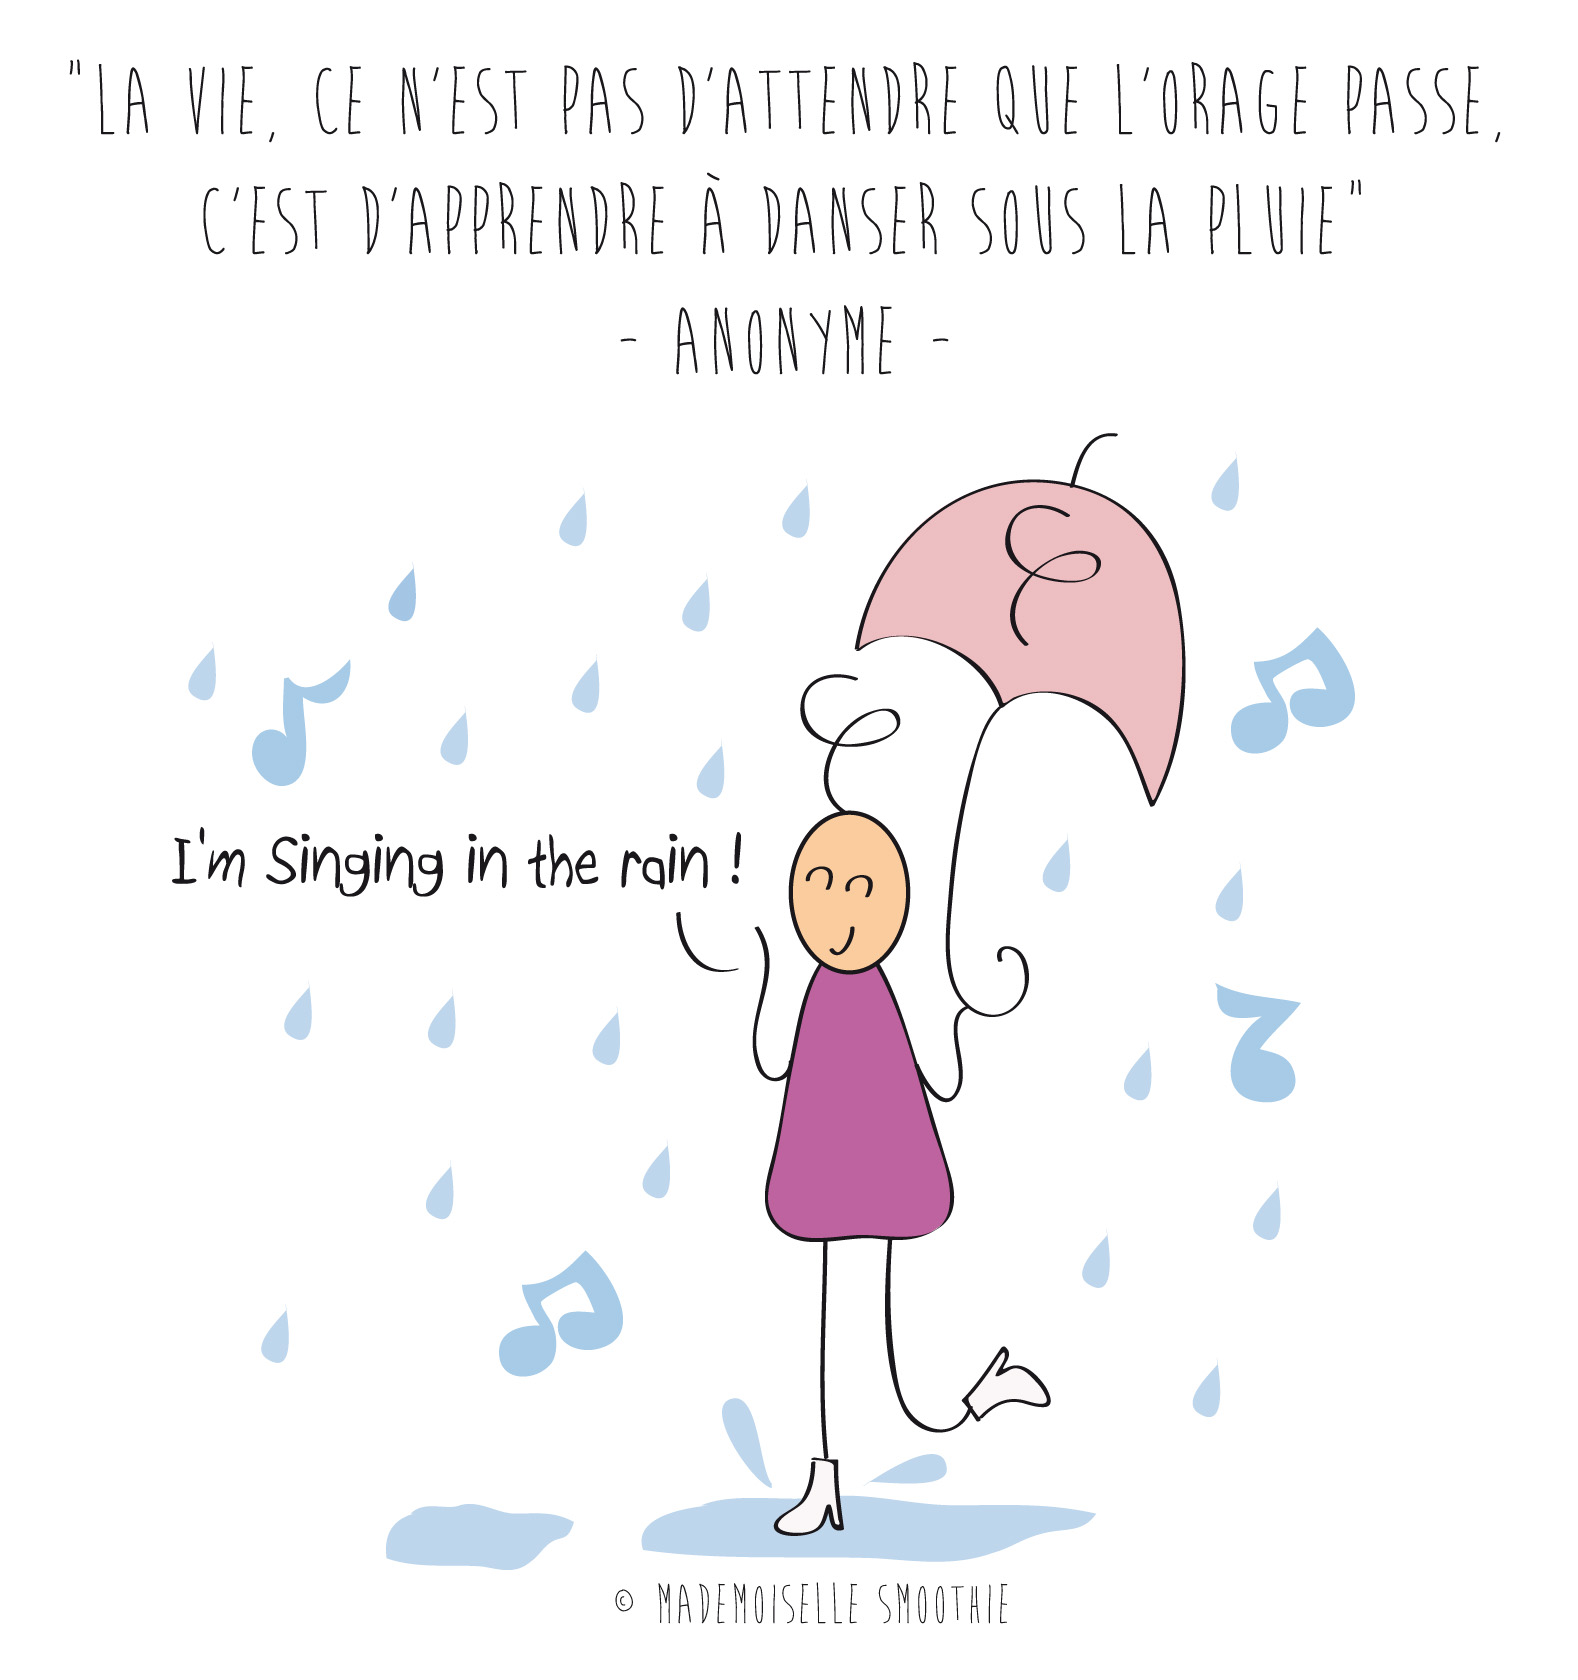 I'm singing in the rain !